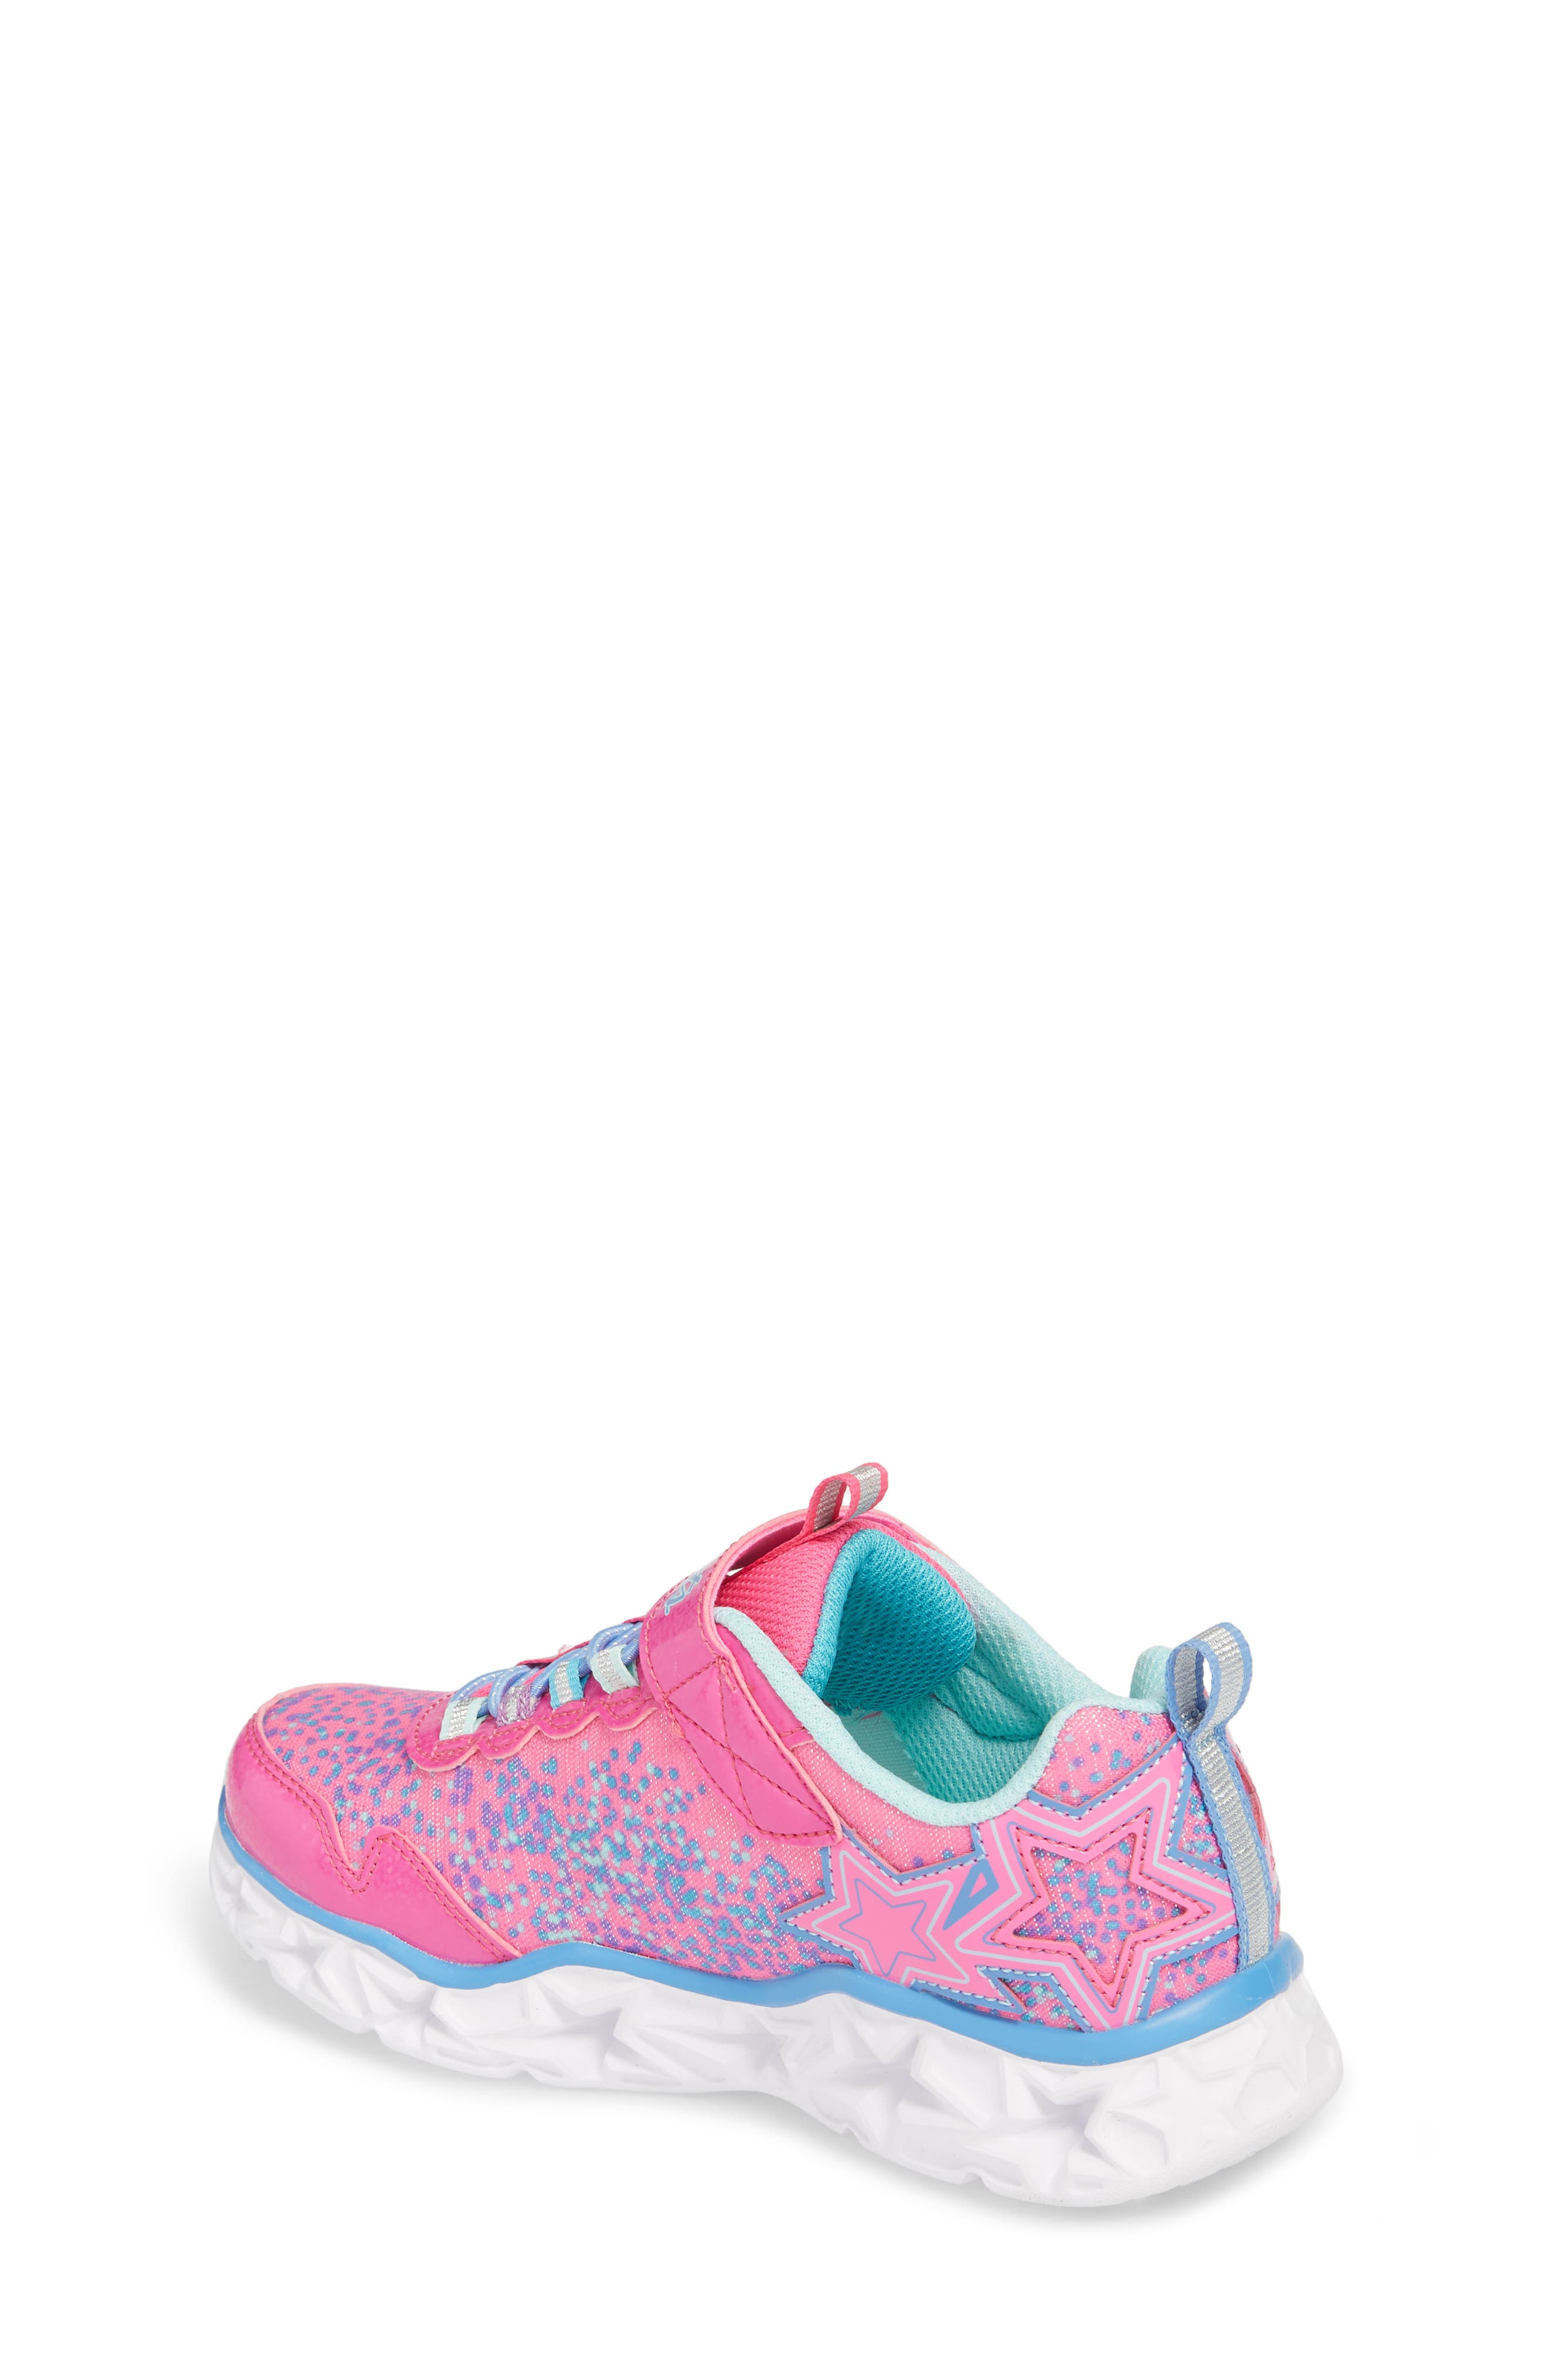 Galaxy Lights Sneakers,                             Alternate thumbnail 2, color,                             650